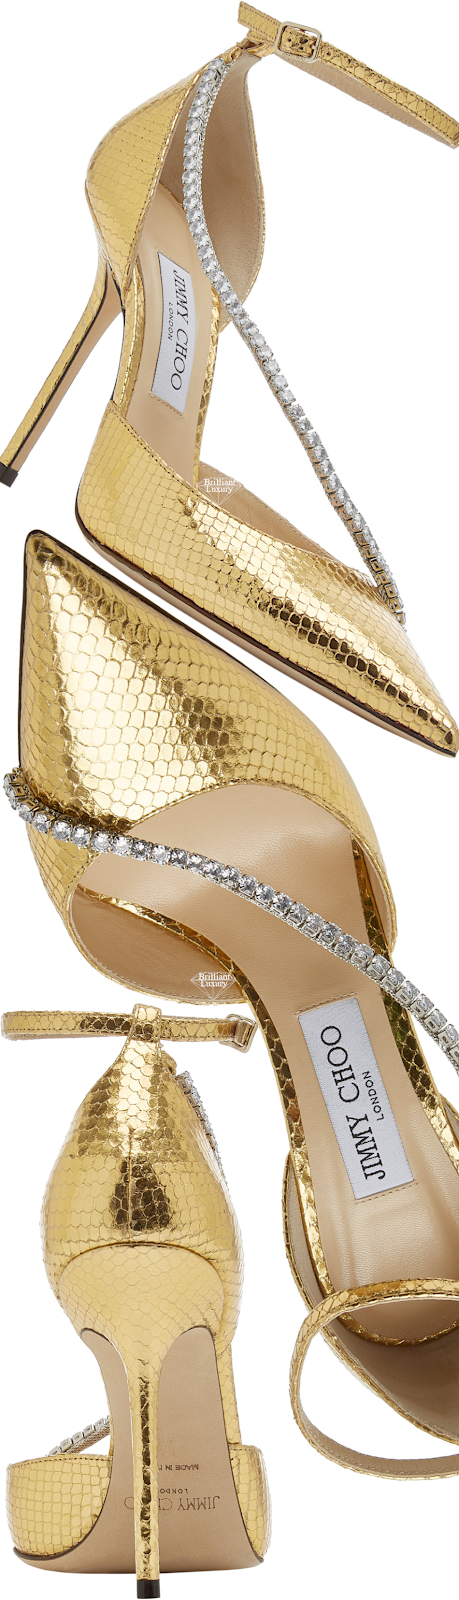 Jimmy Choo Talika Golden Crystal-Embellished Metallic Snake-Effect Leather Pumps #brilliantluxury